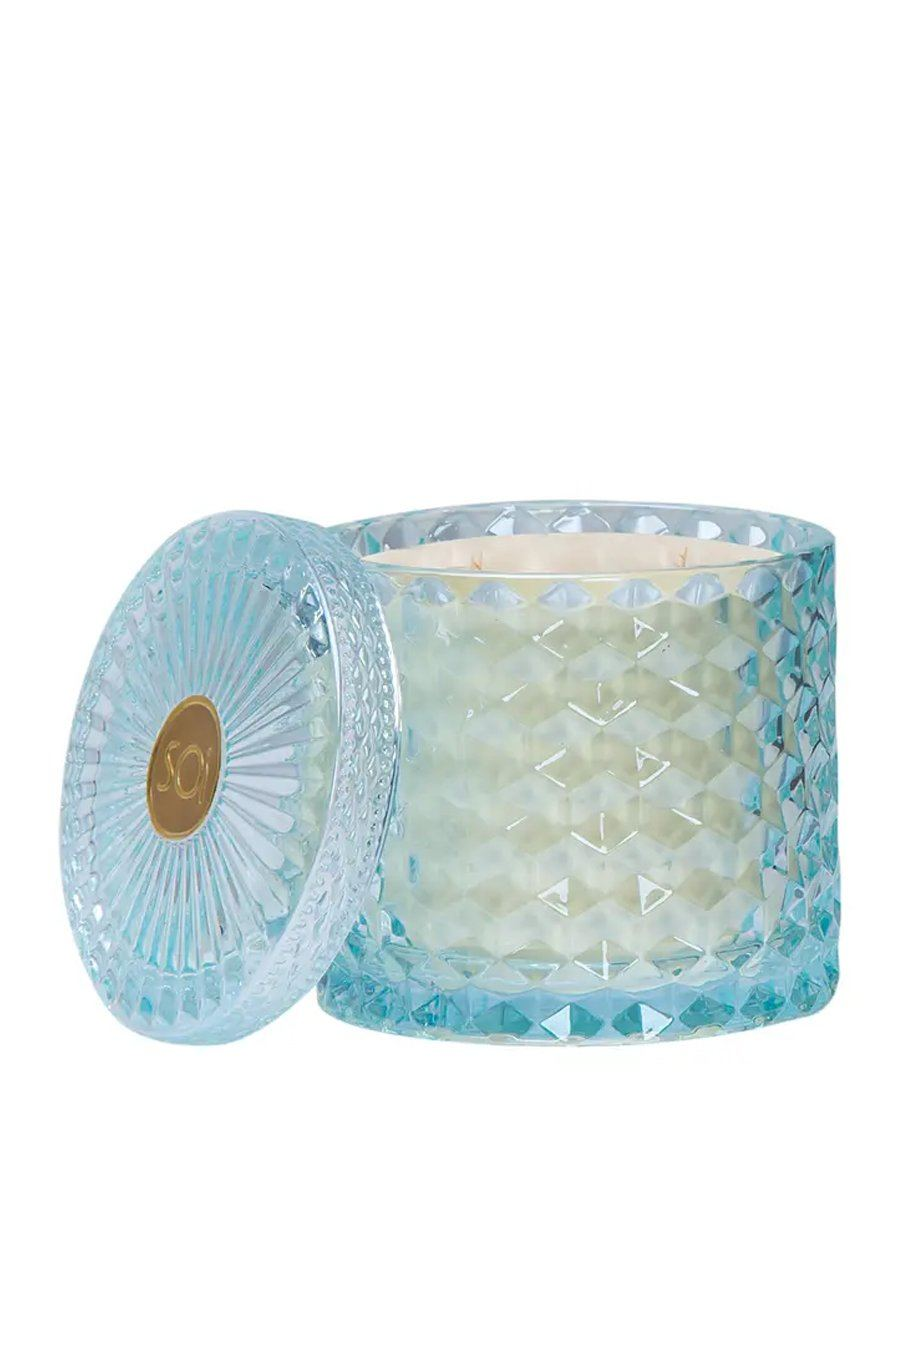 Azure Sands Shimmer Candle - Shore